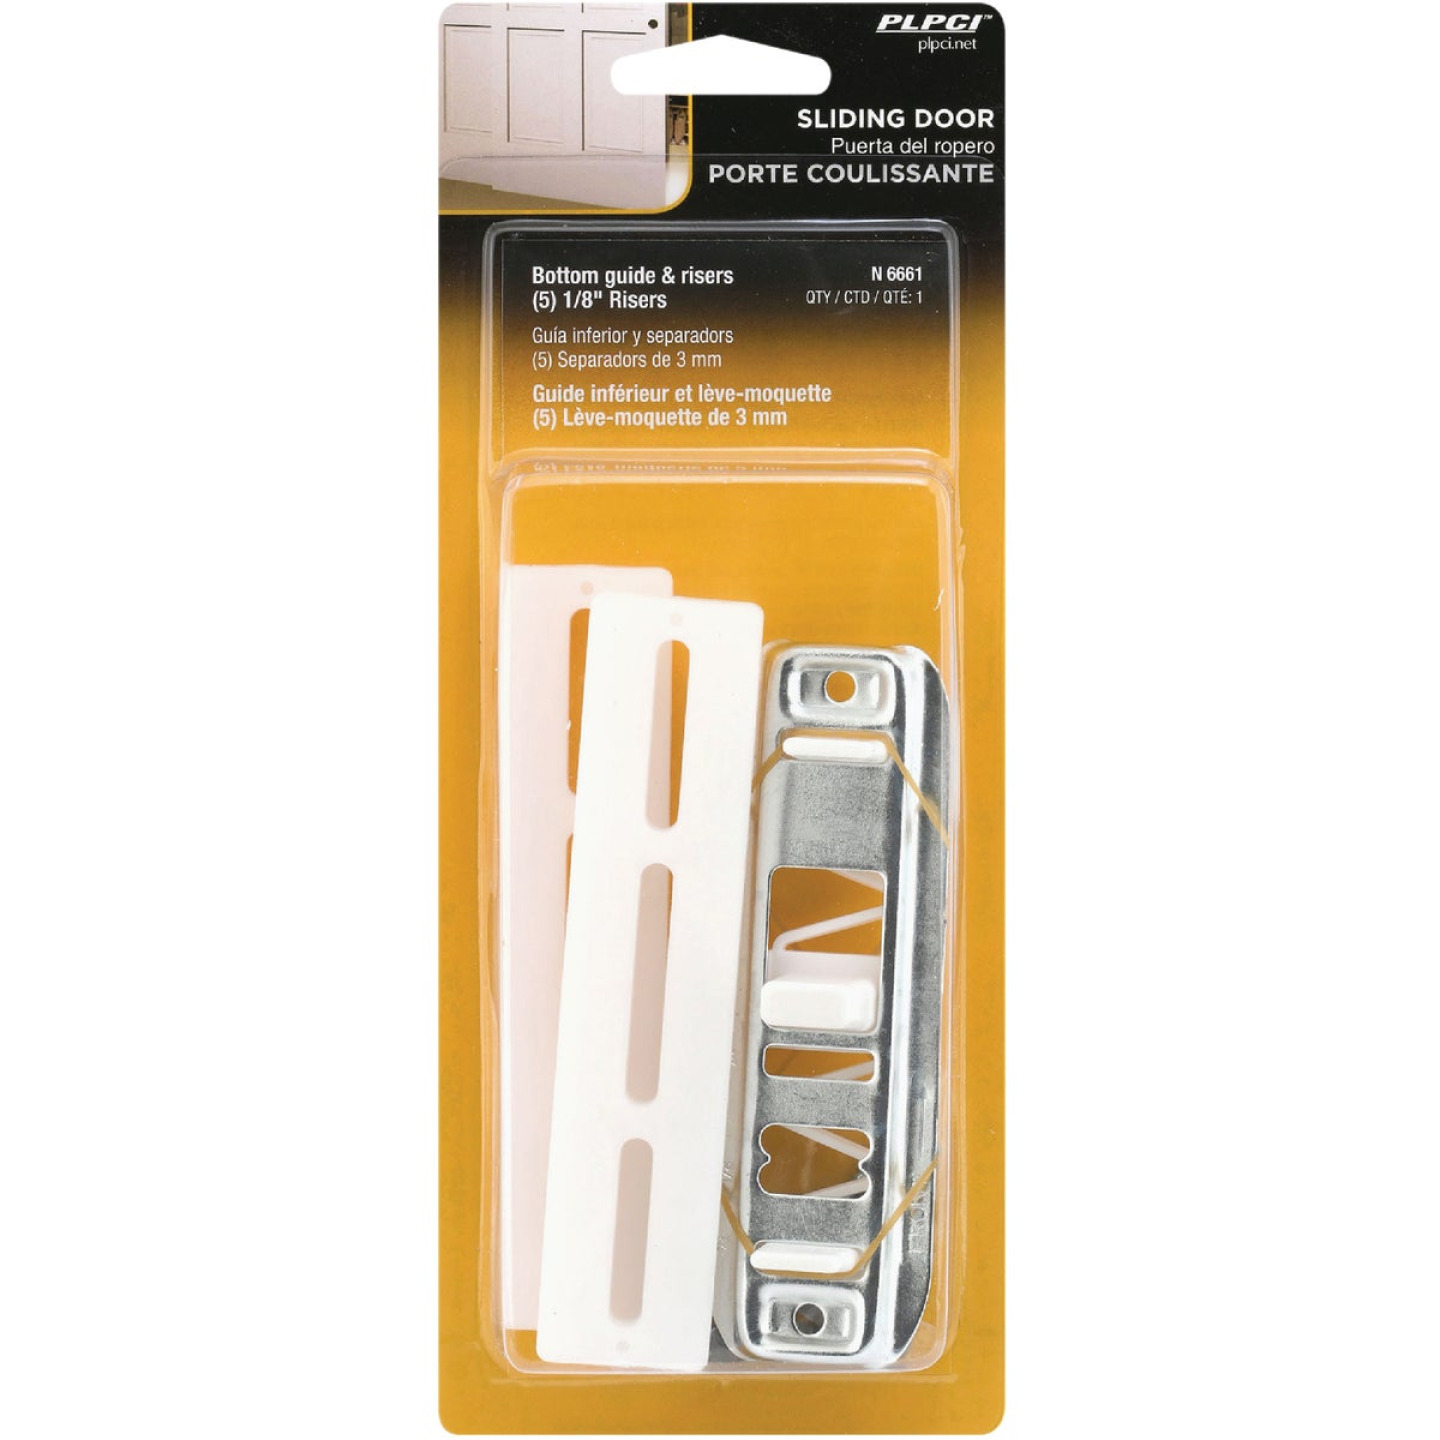 Prime-Line Bypass Door Guide & Carpet Risers Image 2